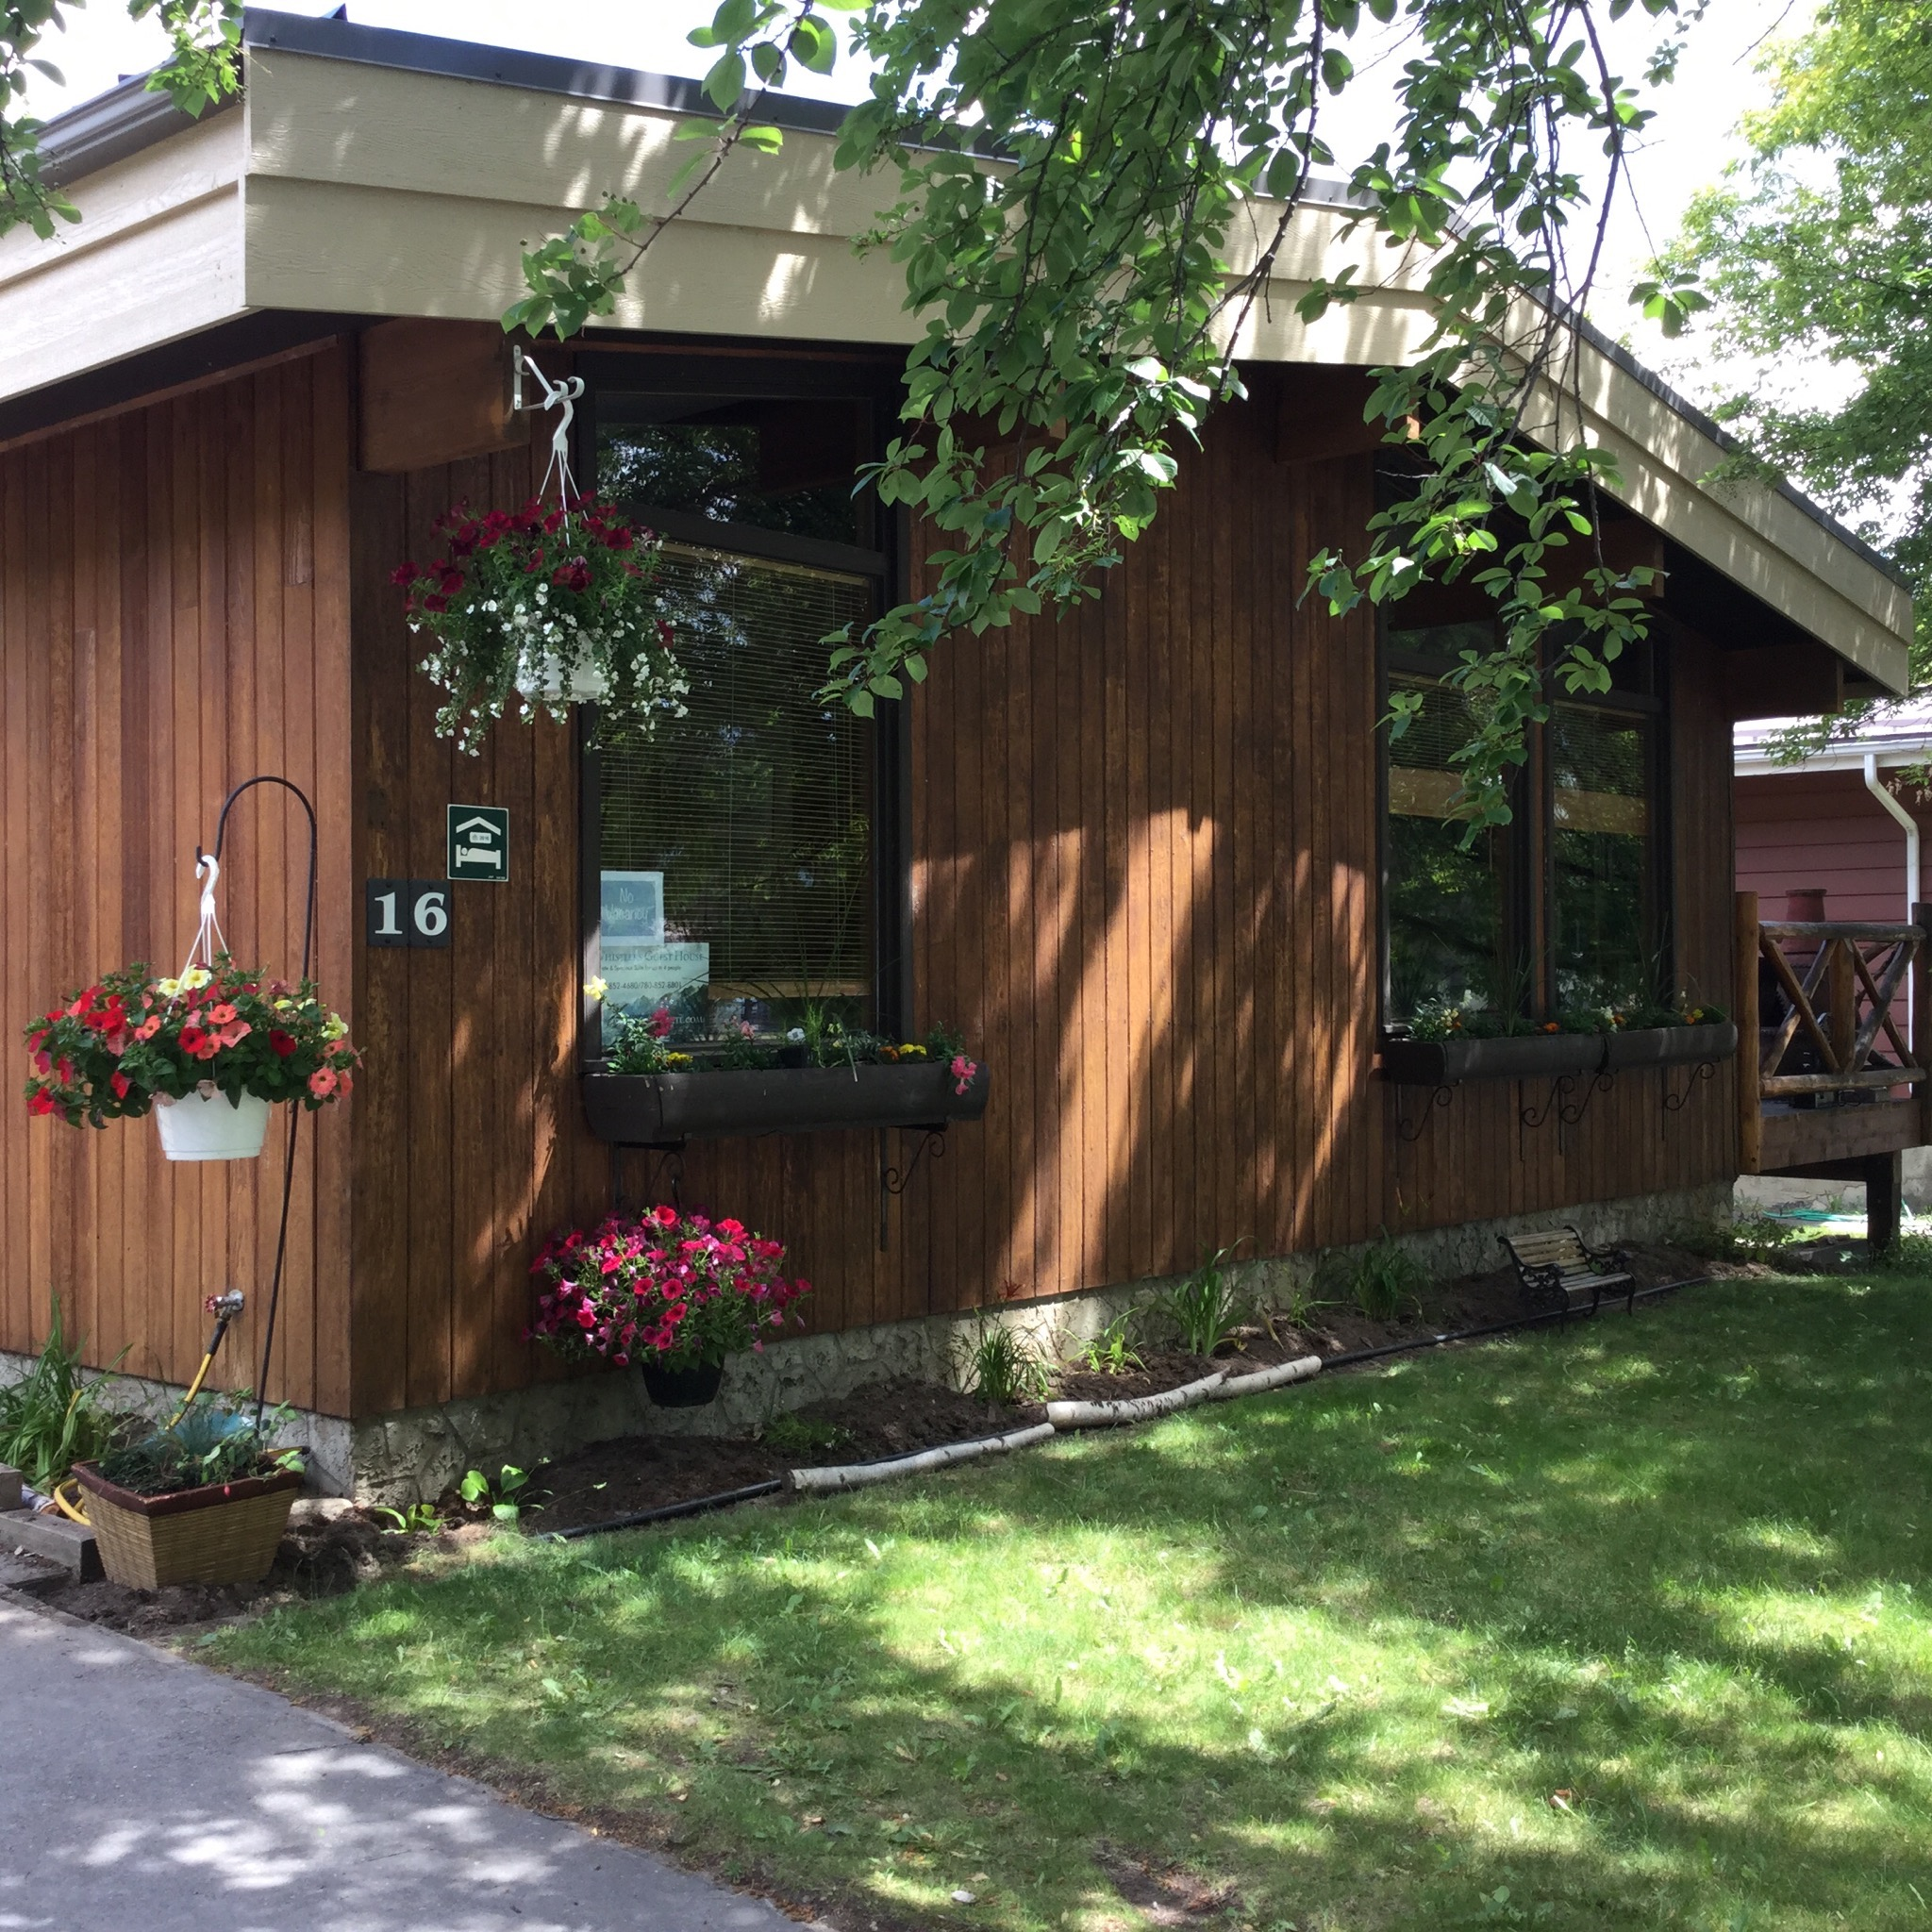 Whistler's Guest House